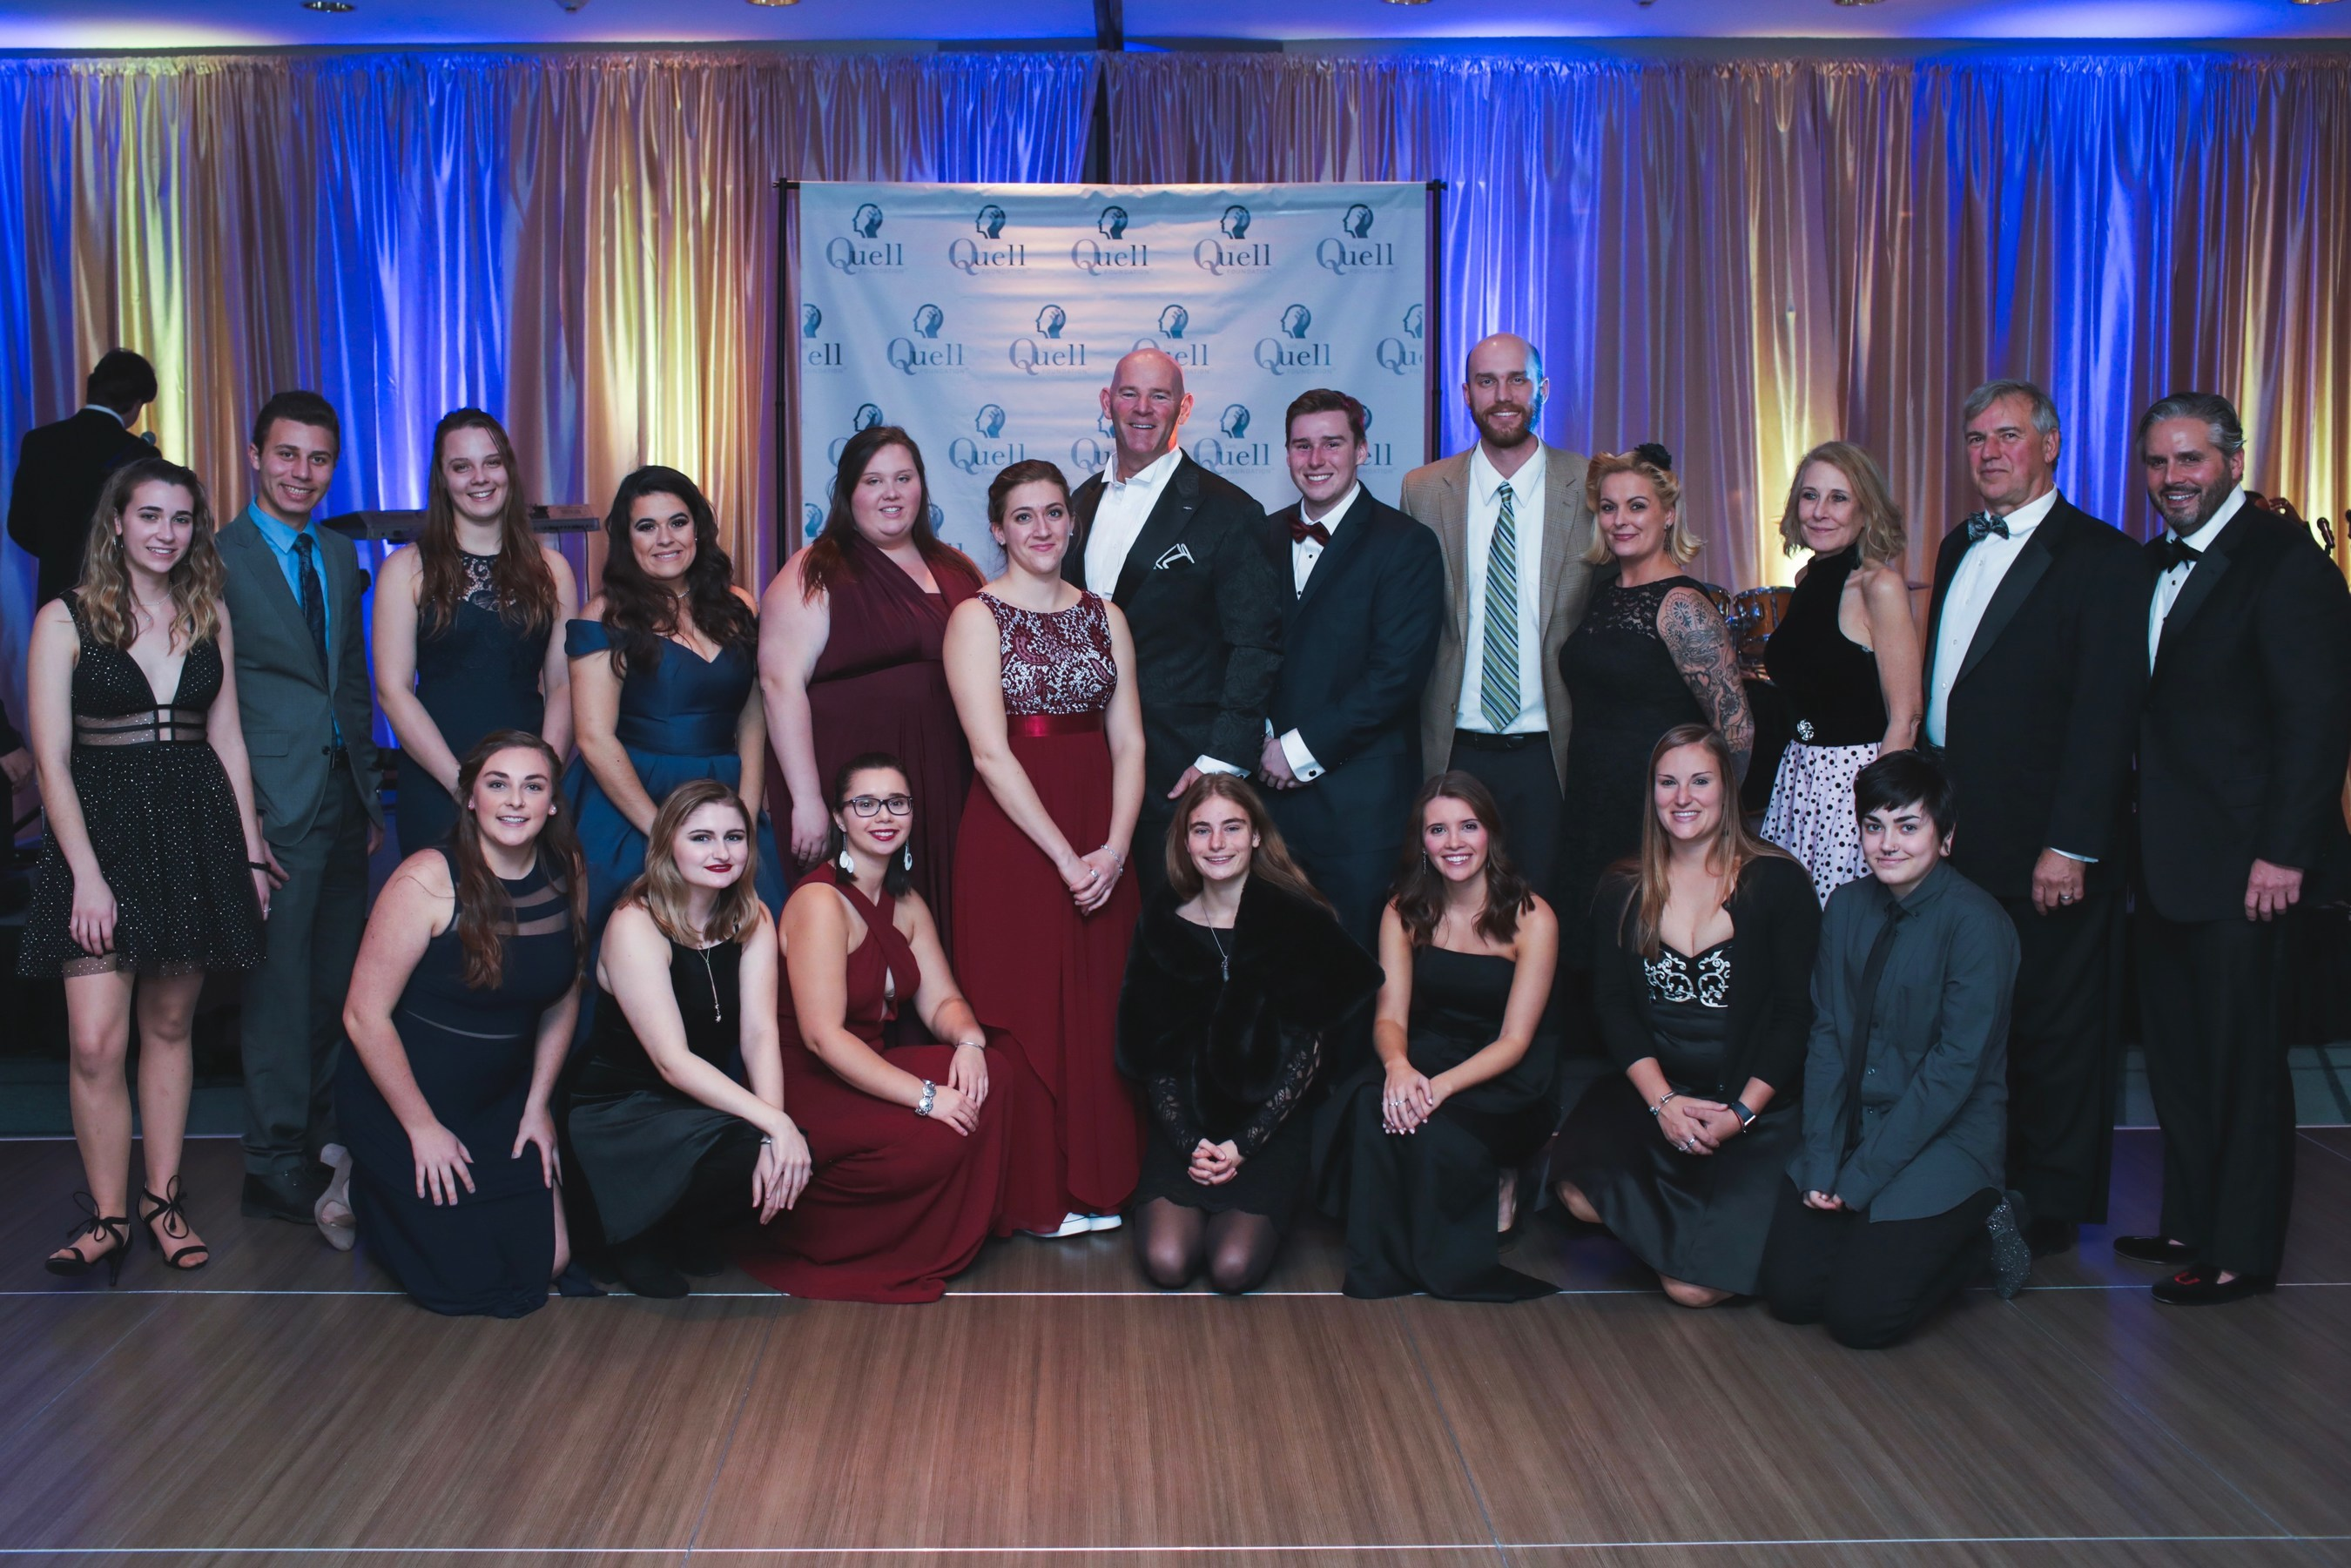 CEO Kevin Lynch and a group of Quell Scholars at the 2018 Quell Foundation Masquerade Ball.